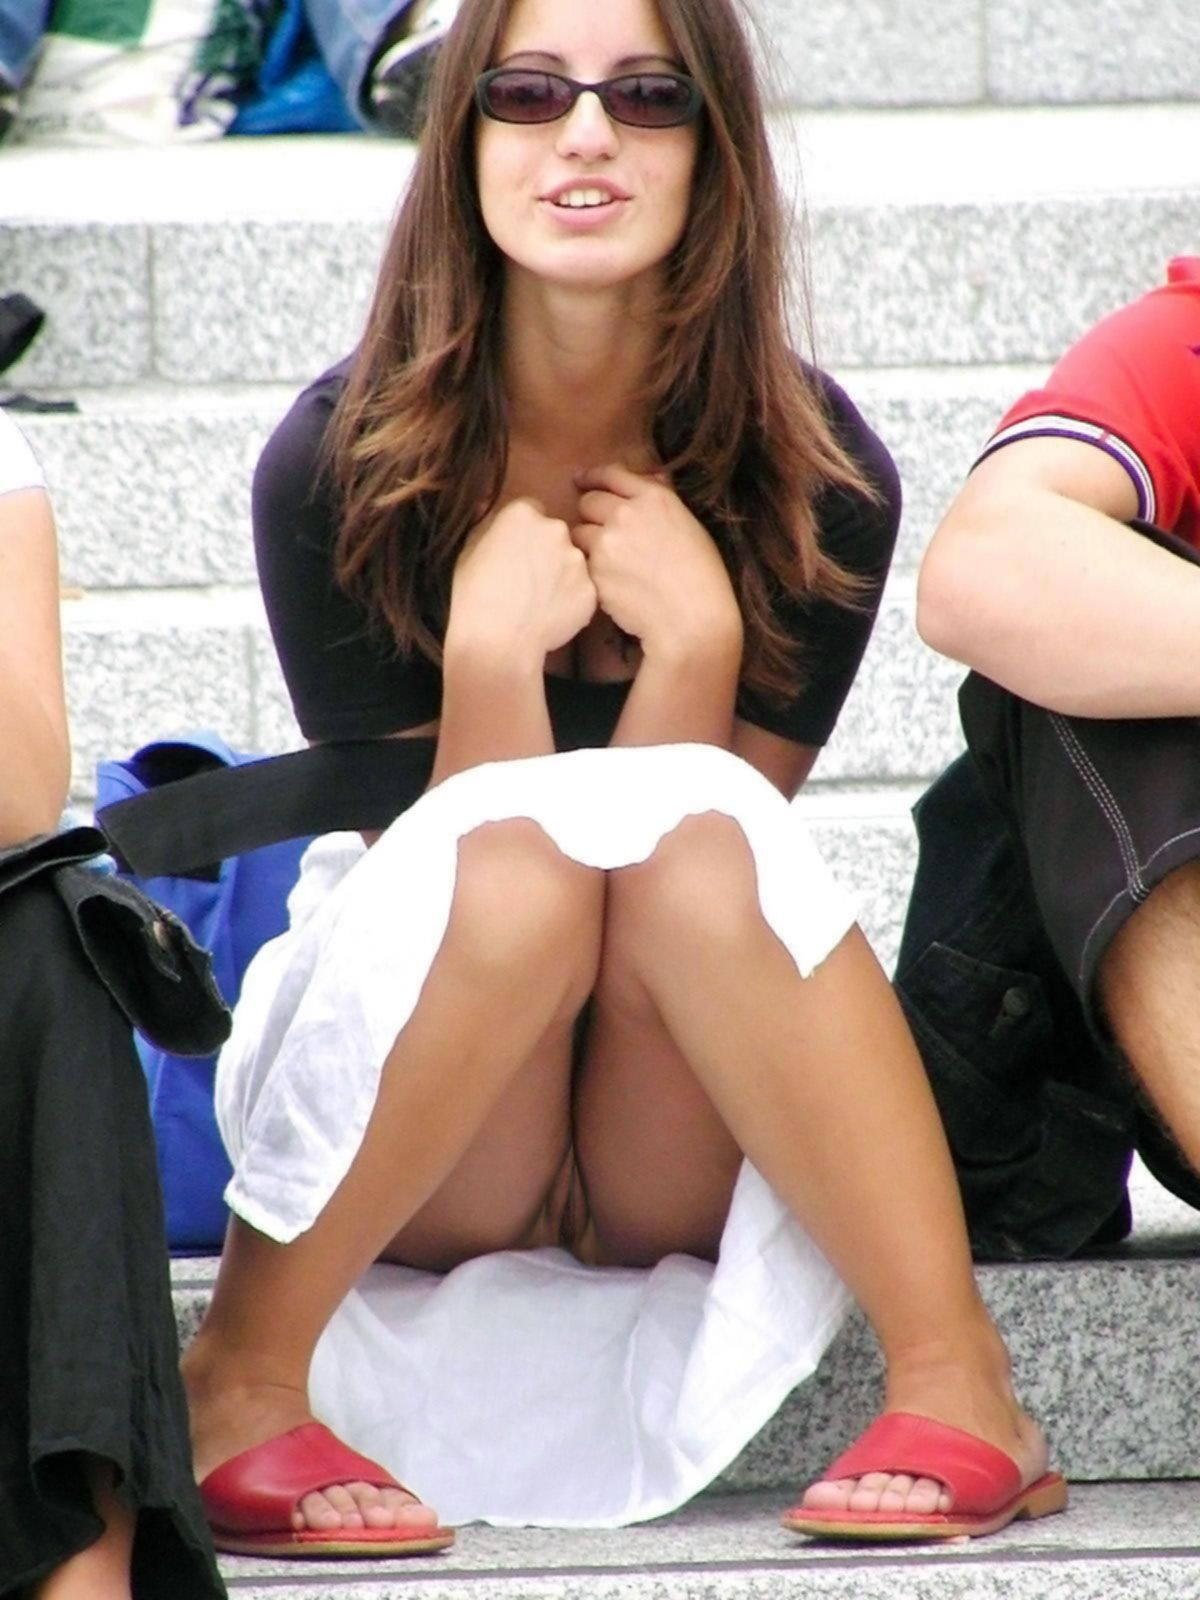 Real Upskirt In Public